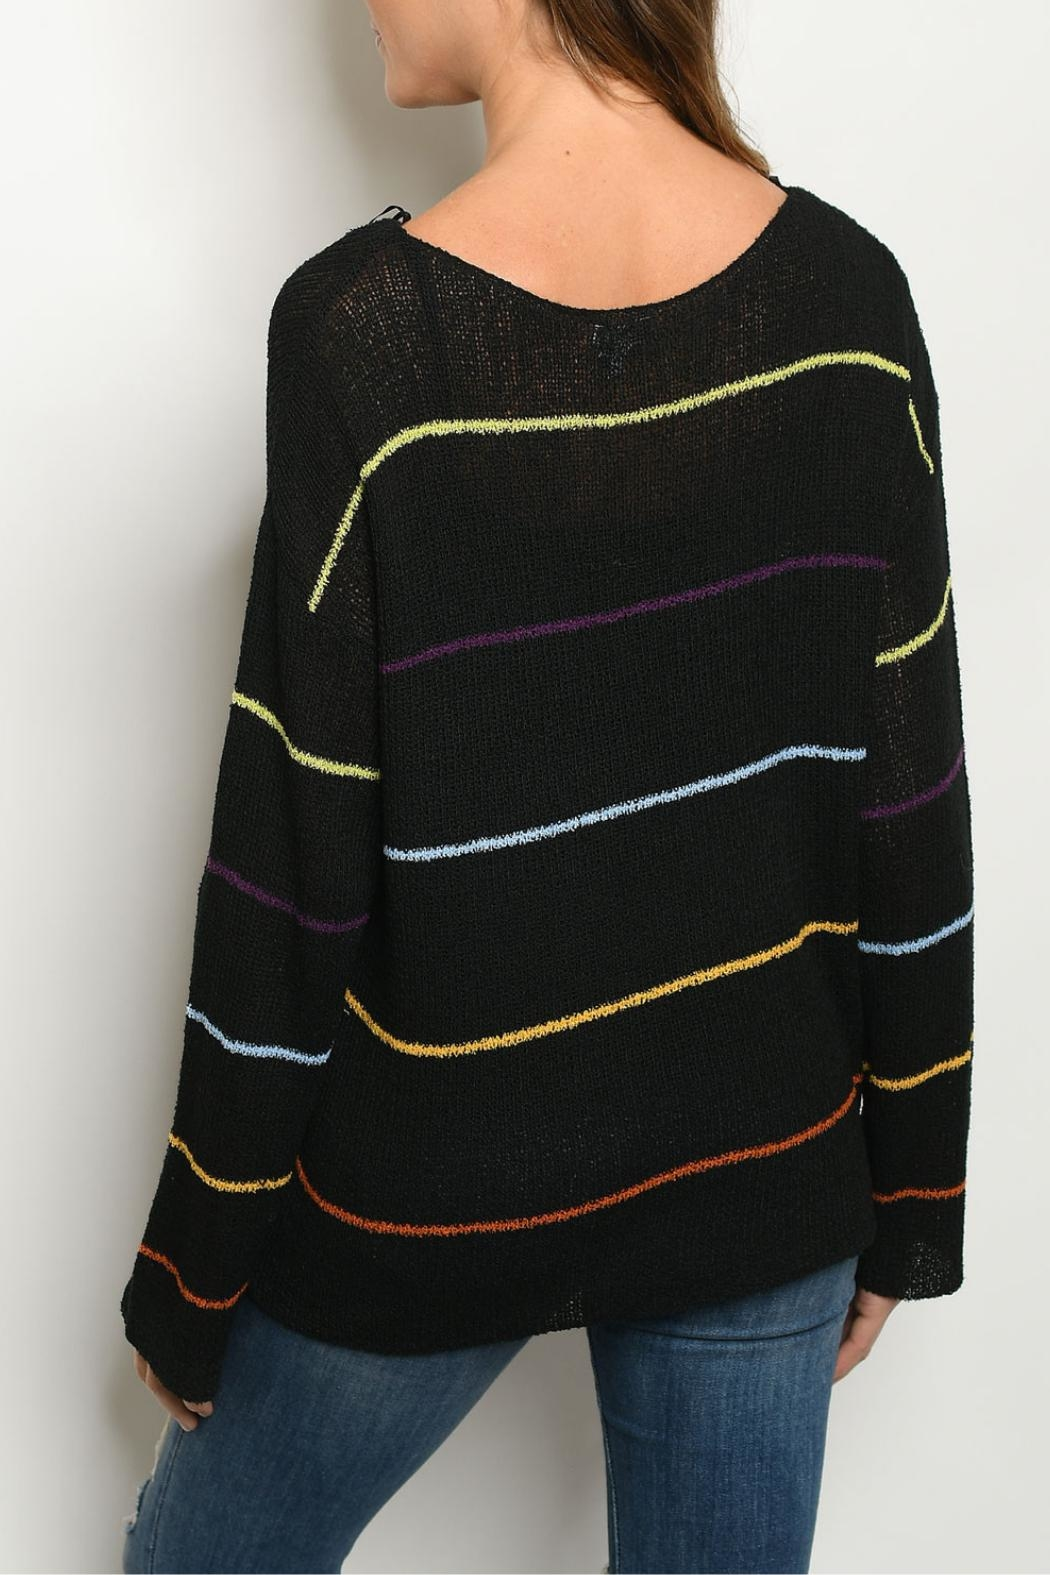 Le Lis Black Multi-Striped Sweater - Front Full Image